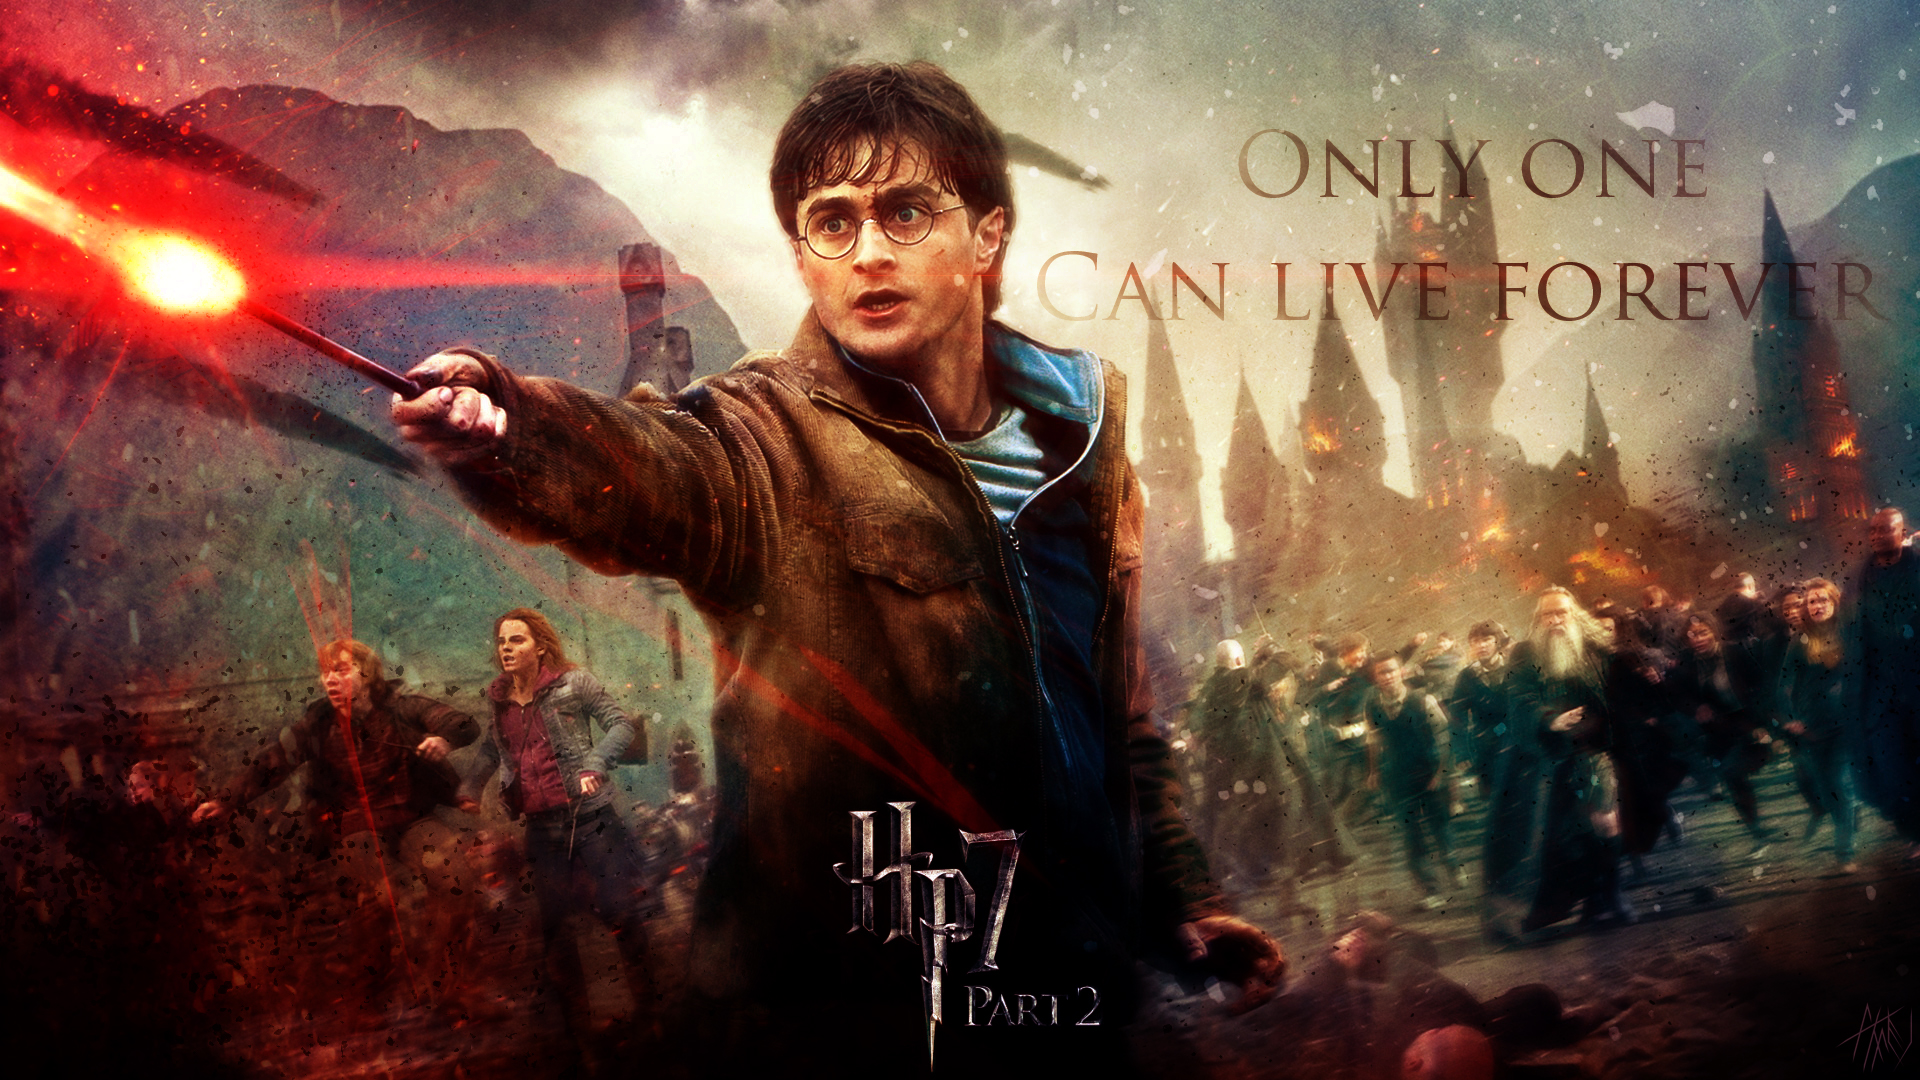 Must see Wallpaper Harry Potter Artwork - harry_potter_and_the_deathly_hallows_wallpaper_by_dj_applej_sound-d68n77b  Best Photo Reference_1003150.jpg